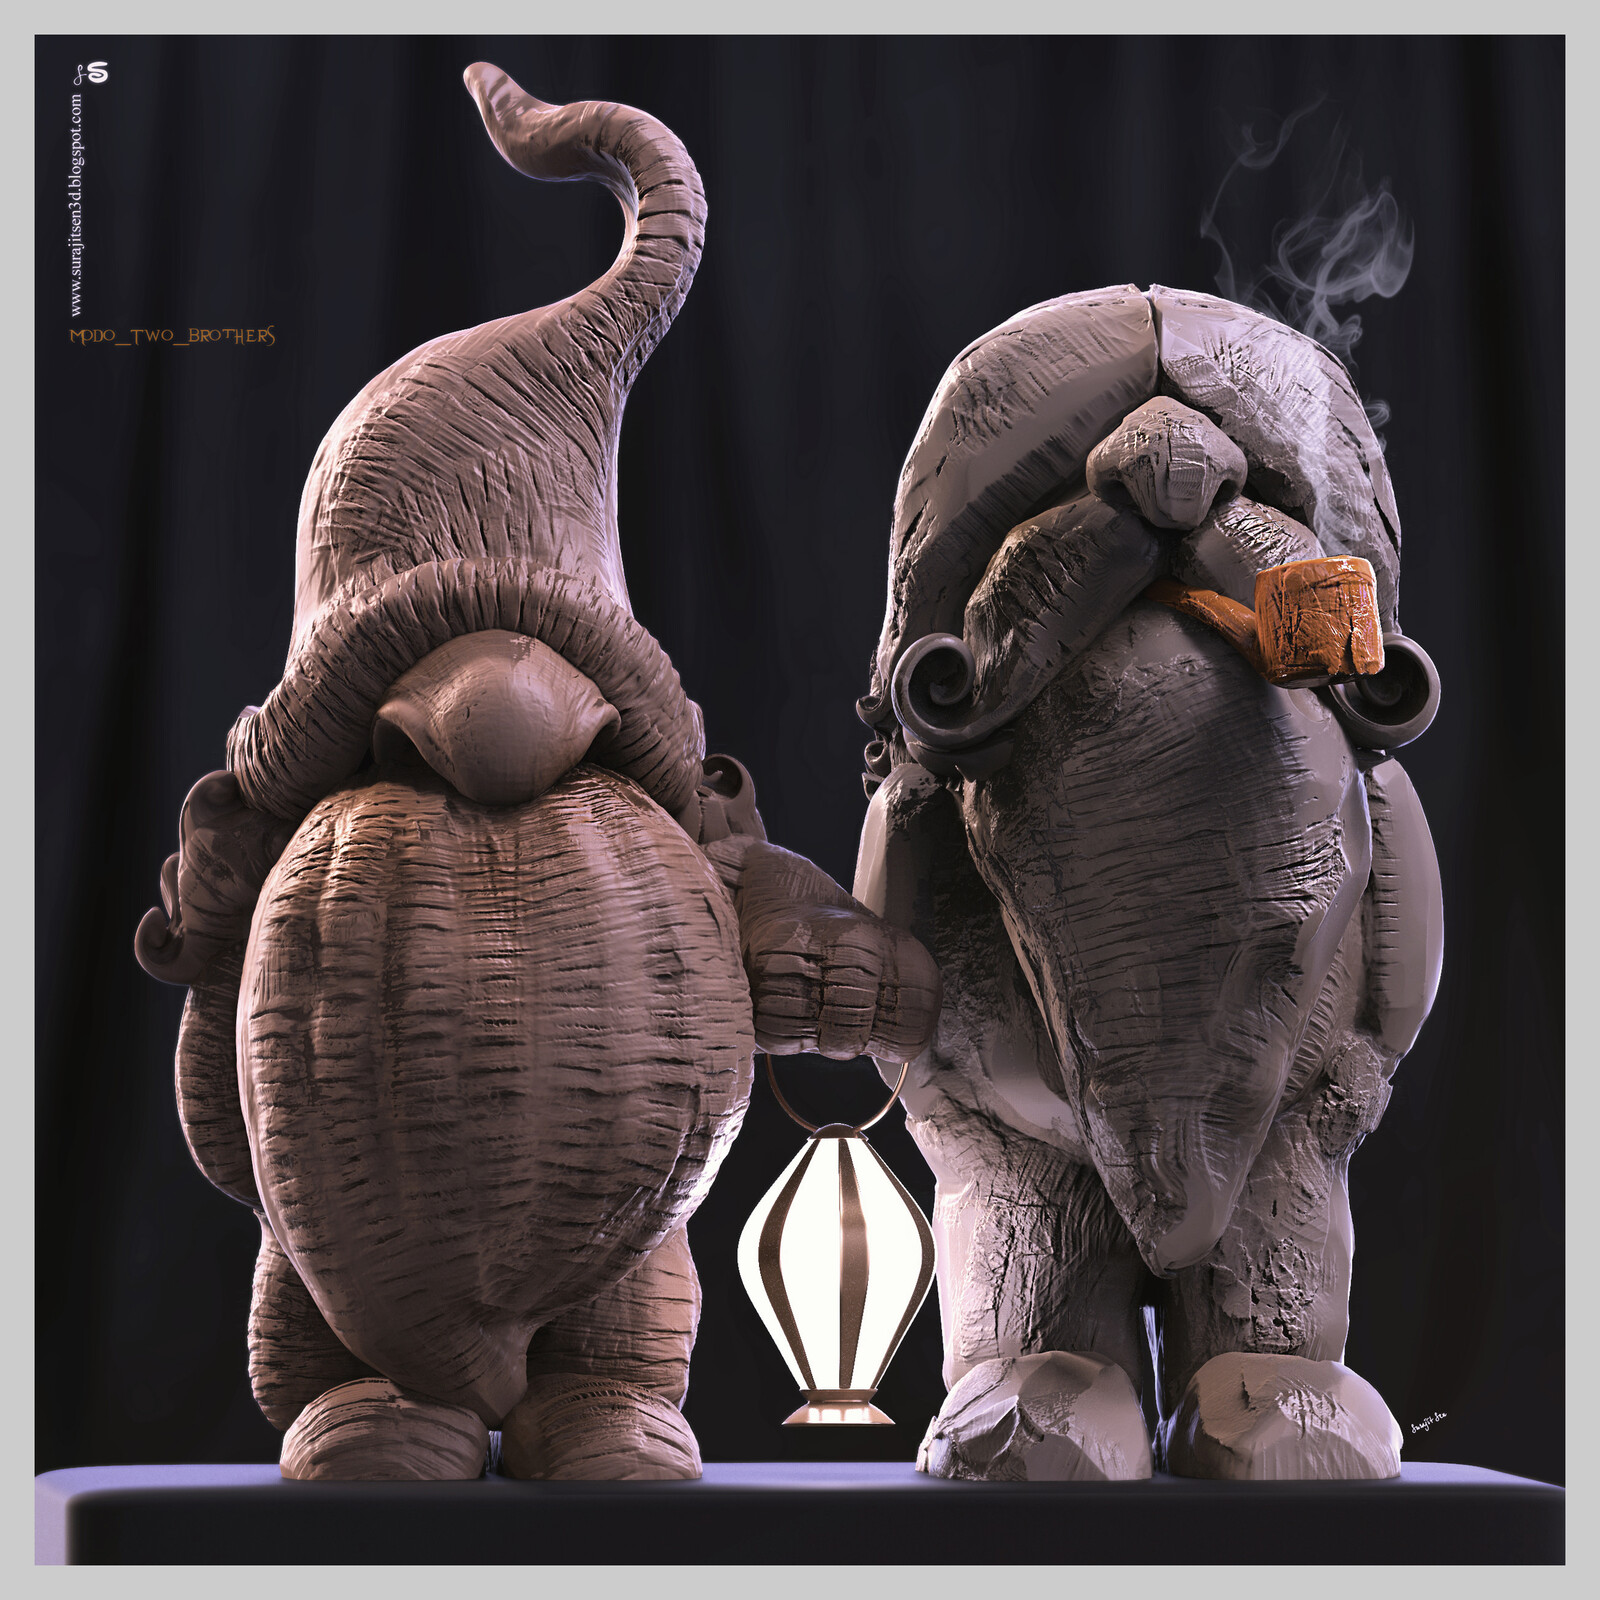 Fun with brushes. Modo_Two_Brothers Digital Sculpture. Wish to share.. :) Background music- #hanszimmermusic